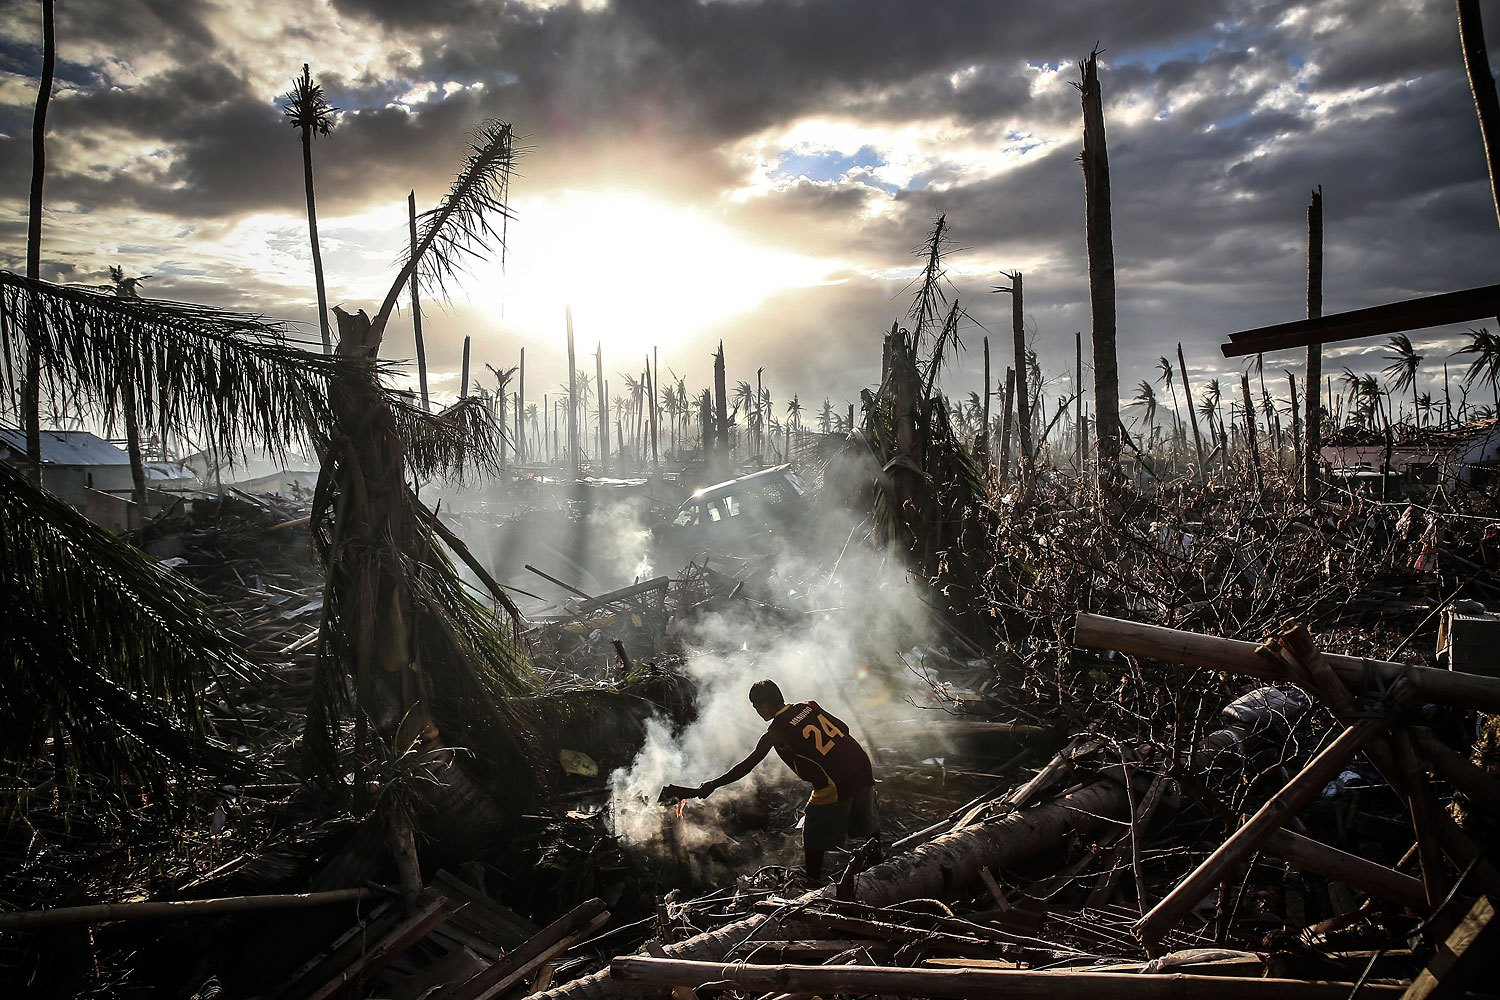 A man fans flames on a fire in Tanauan, Leyte province, Philippines, on November 19, 2013. Typhoon Haiyan devastated the nation leaving at least 6,000 dead.